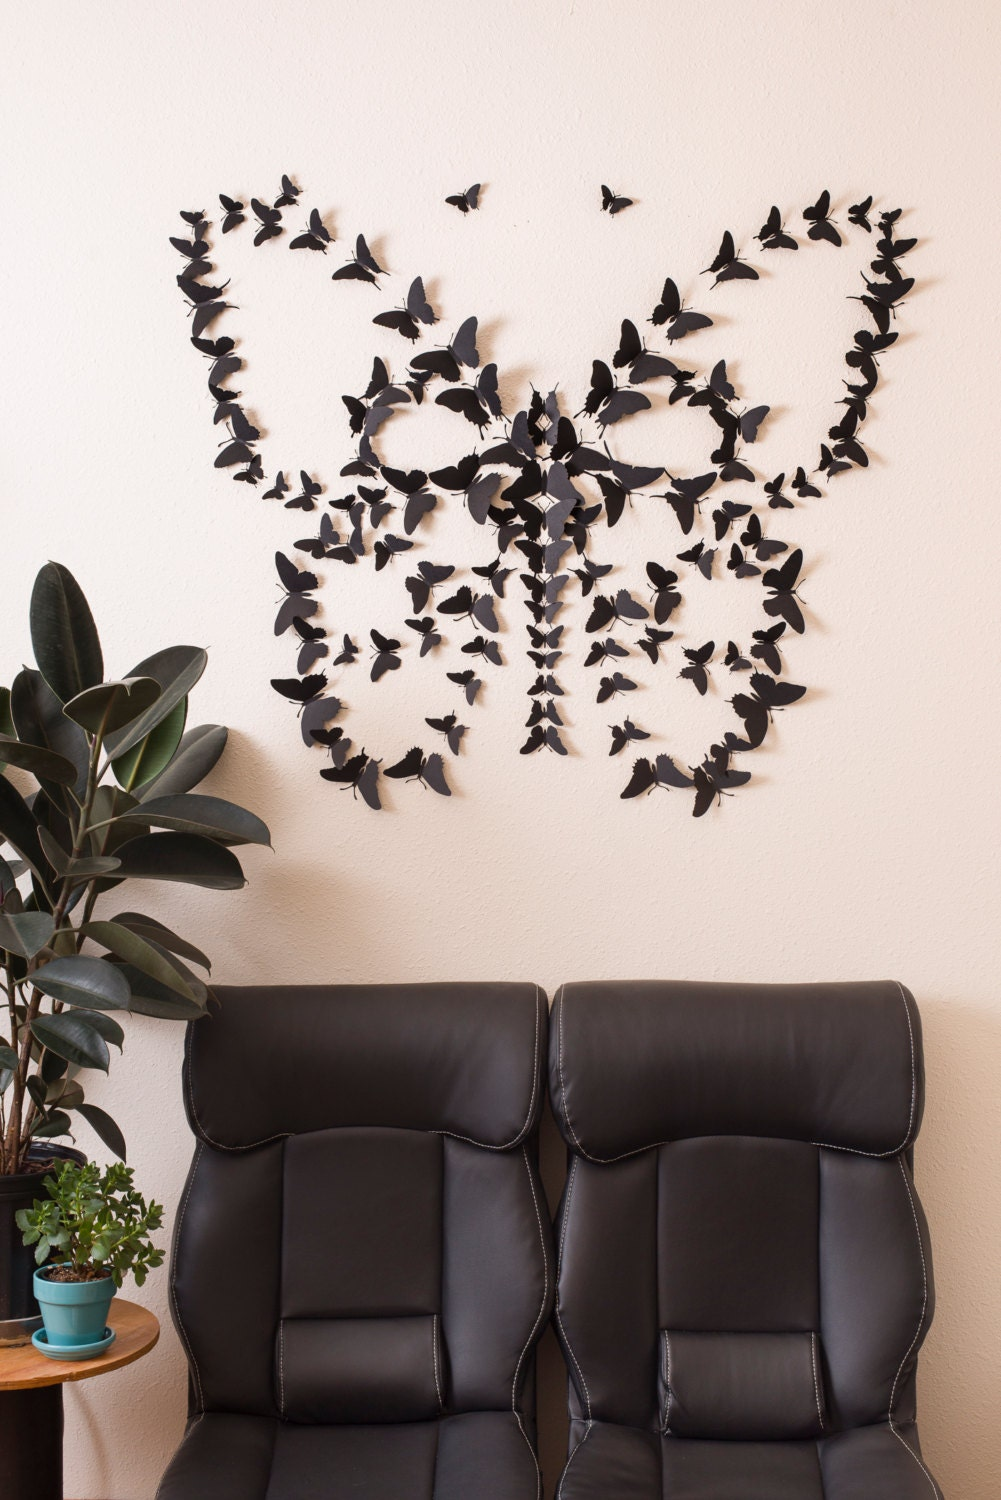 3d Wall Art For Contemporary Homes: Black 3D Butterfly Wall Art